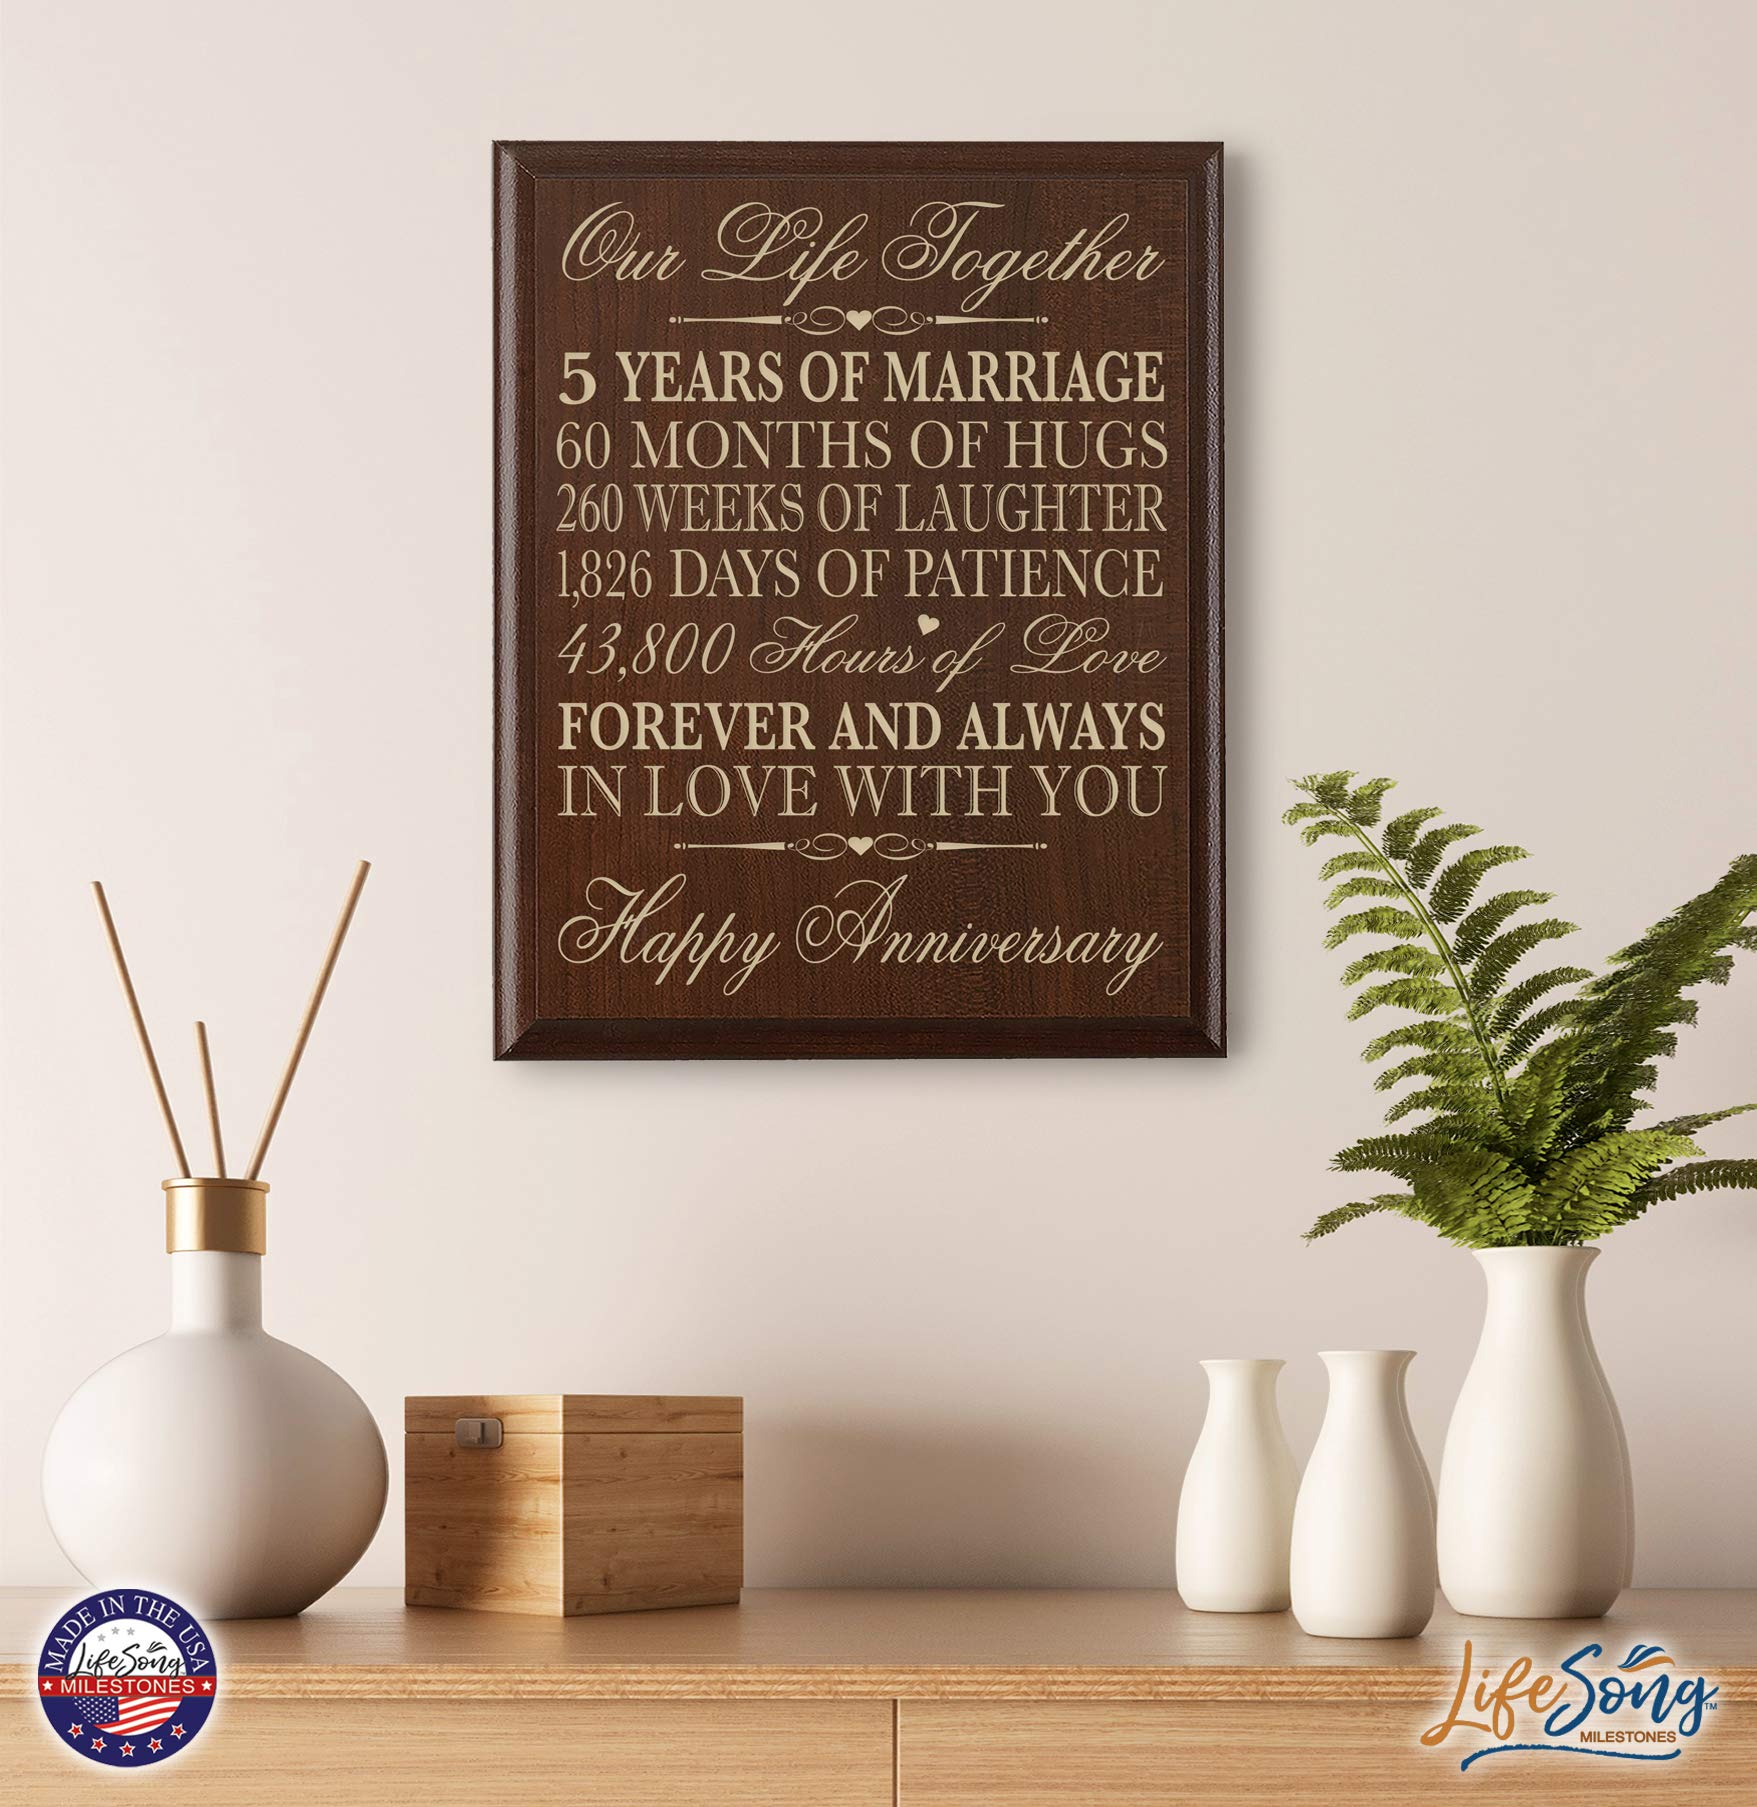 LifeSong Milestones 5th Wedding Anniversary Cherry Wall Plaque Gifts for Couple, 5th Anniversary Gifts for Her,5th Wedding Anniversary Gifts for Him 12 inches wide X 15 inches high Wall Plaque By by LifeSong Milestones (Image #2)